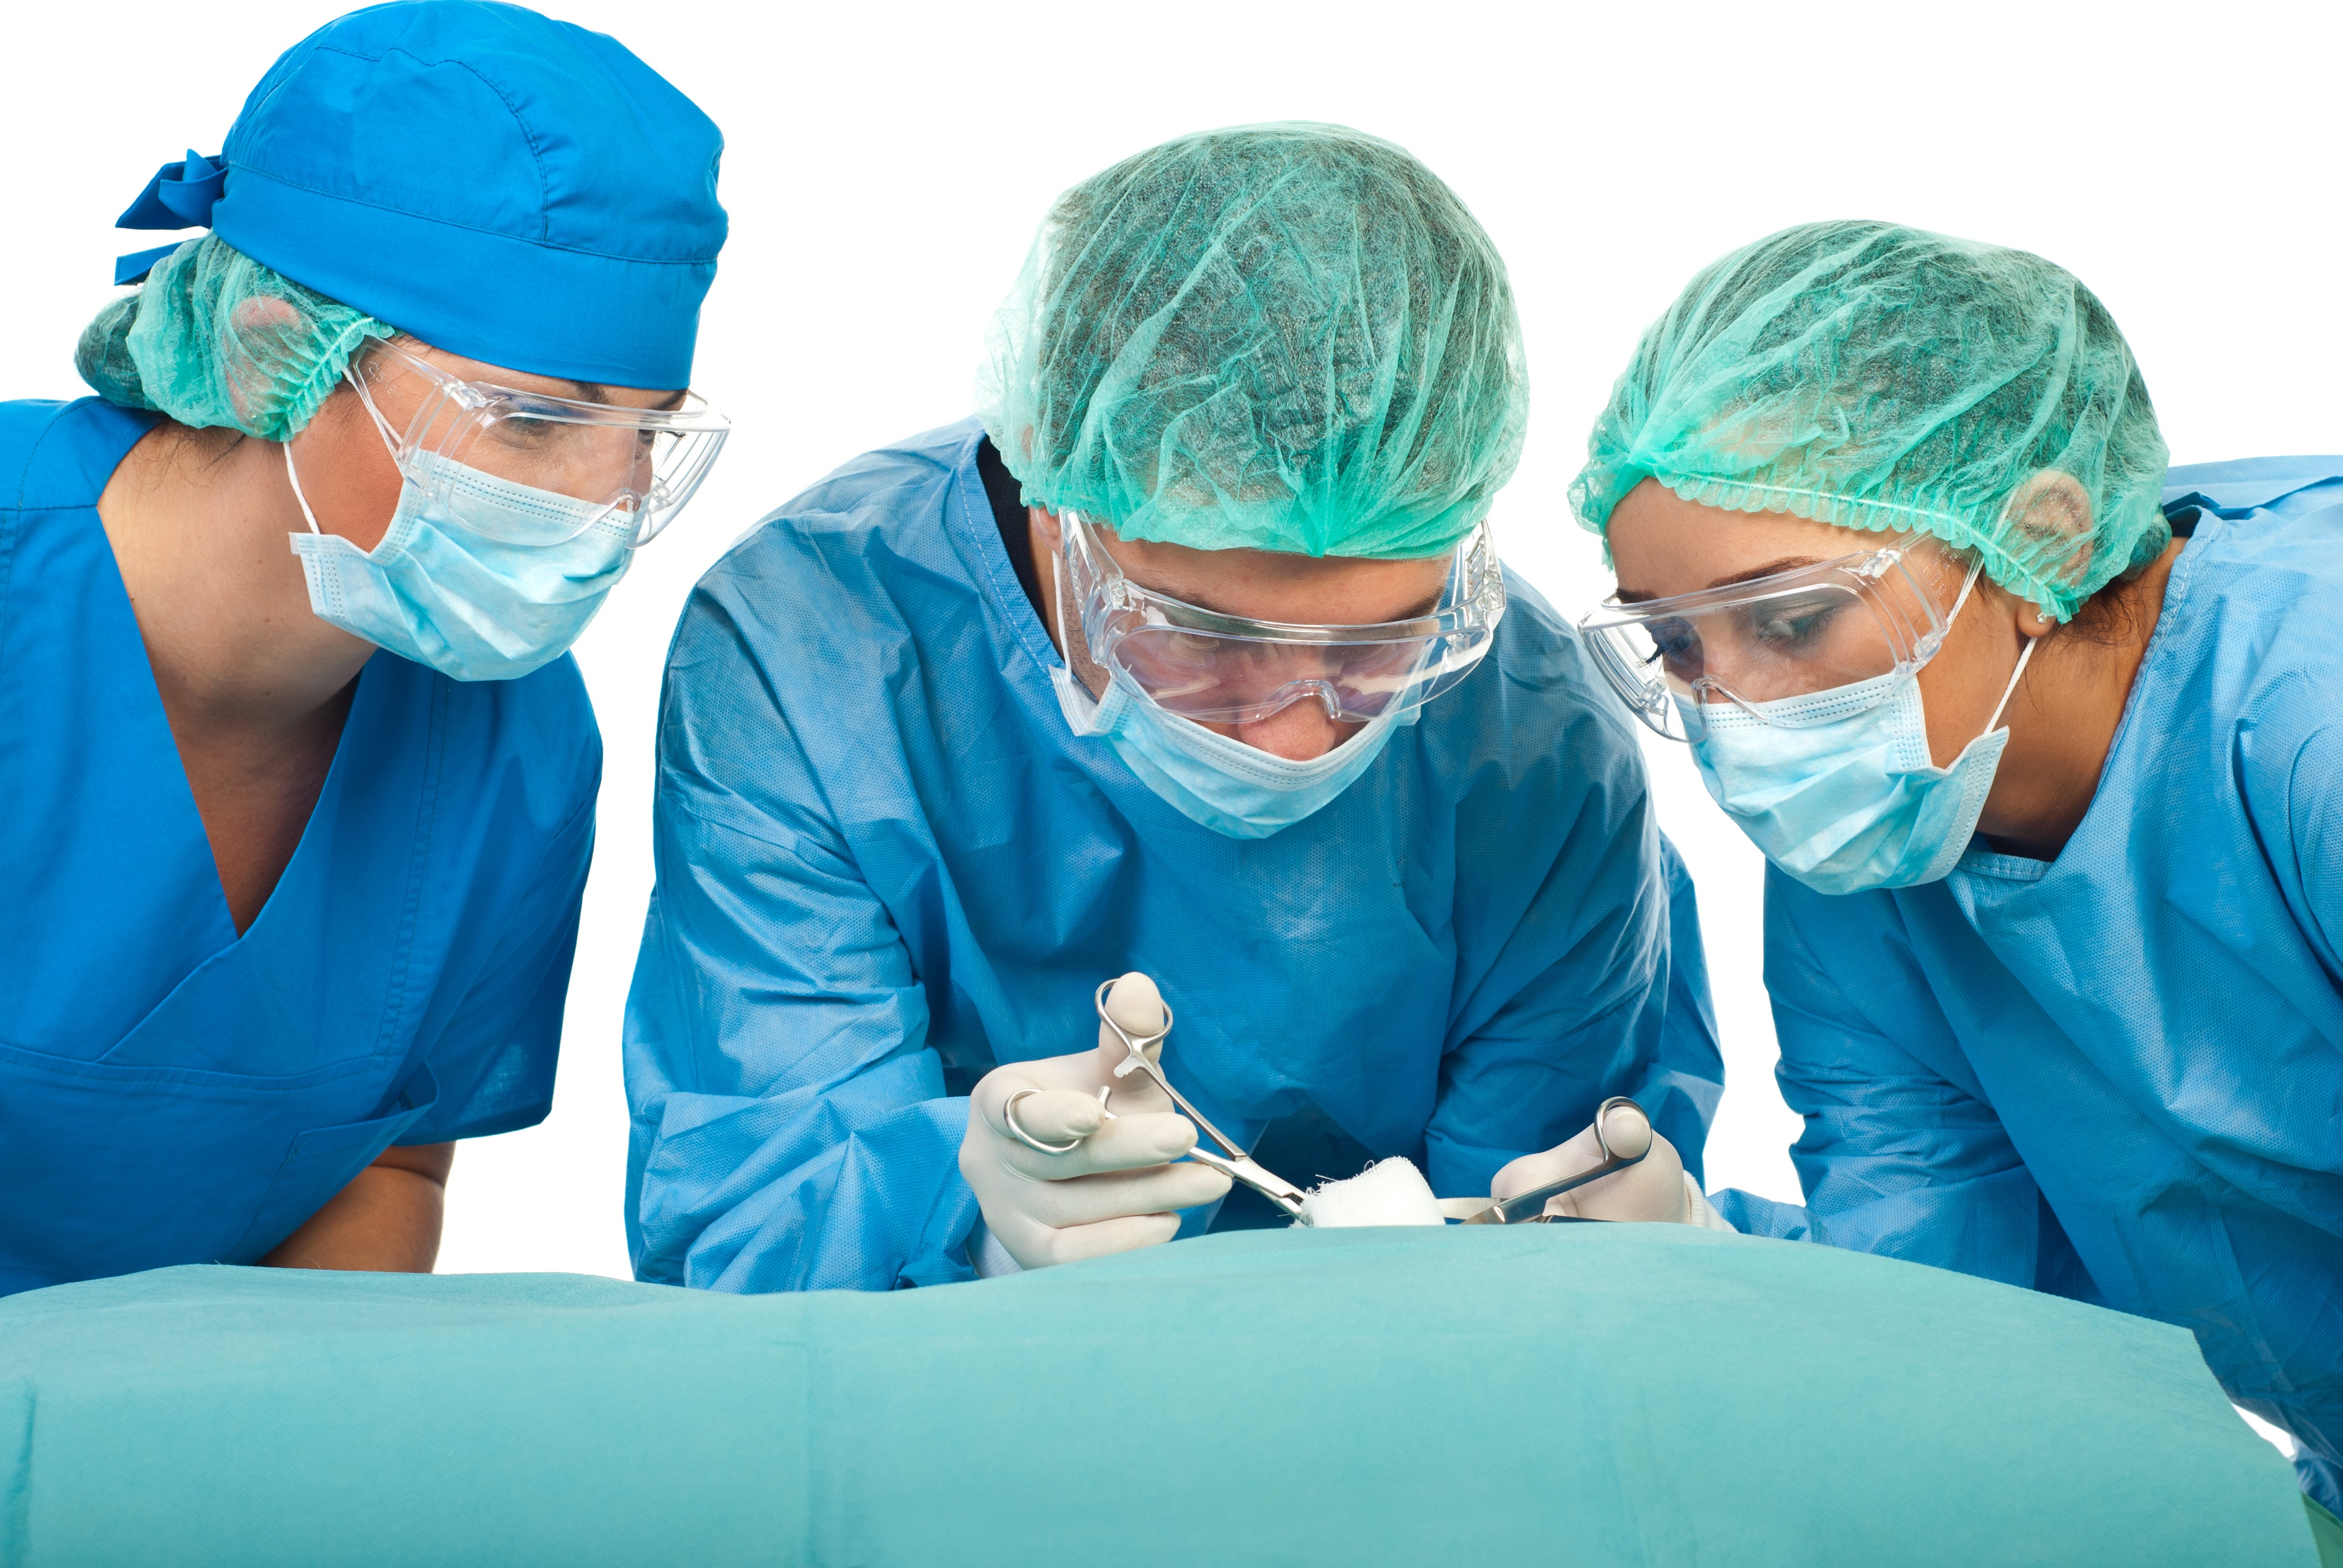 three surgeons doing a surgery wearing blue gowns